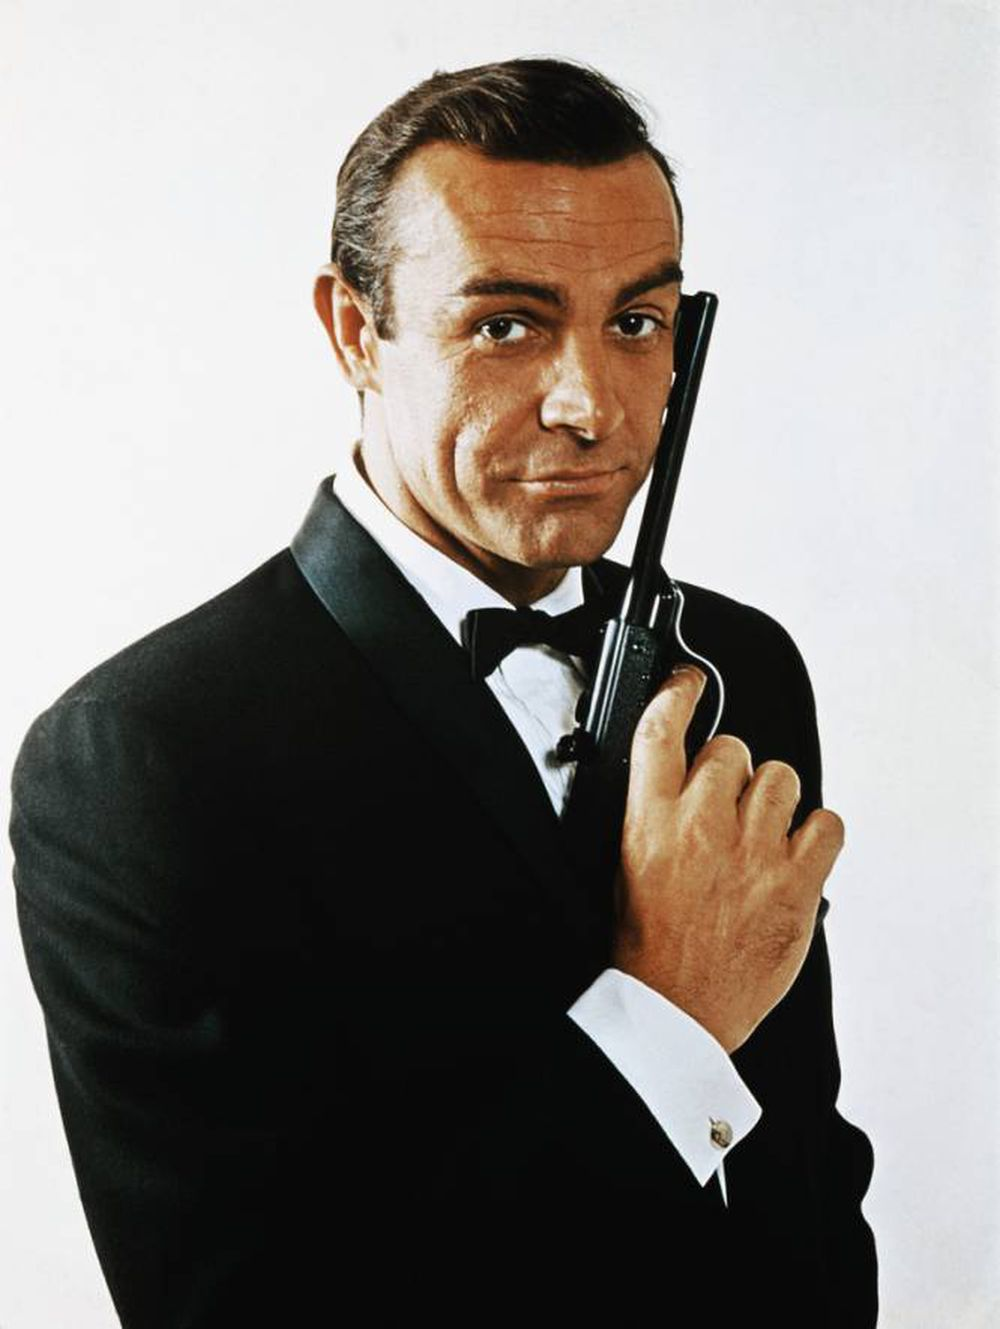 El actor Sean Connery, caracterizado de James Bond en 1968.